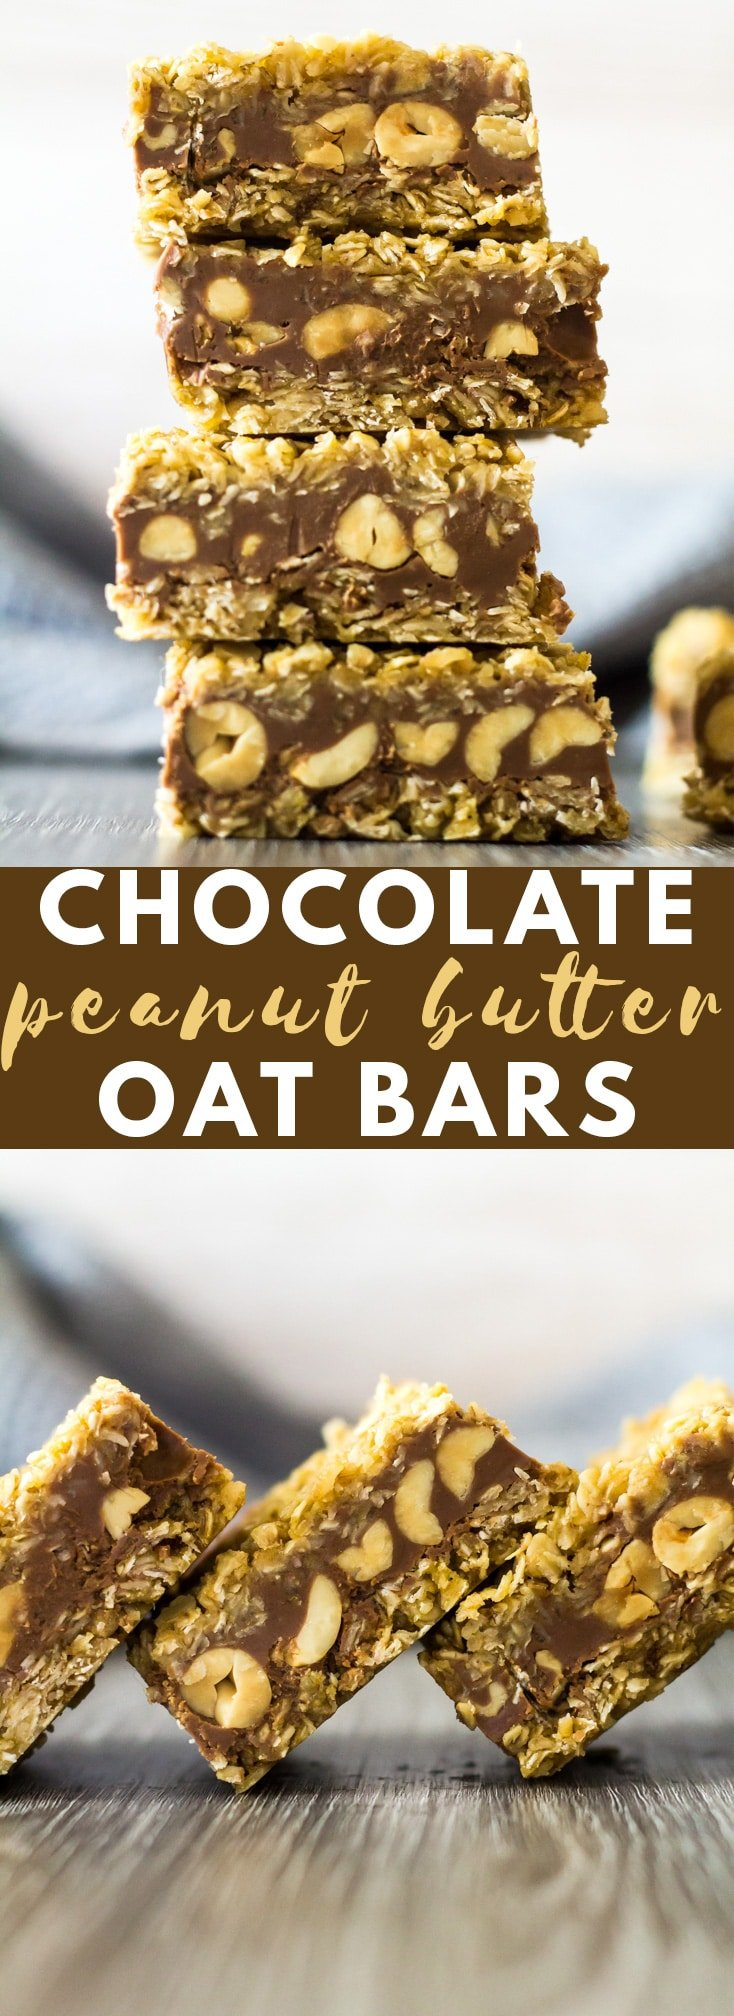 No-Bake Chocolate Peanut Butter Oat Bars - Deliciously creamy and chewy bars that are made up of two oaty layers, and a chocolate layer stuffed full of salted peanuts! #chocolate #peanutbutter #nobake #recipe